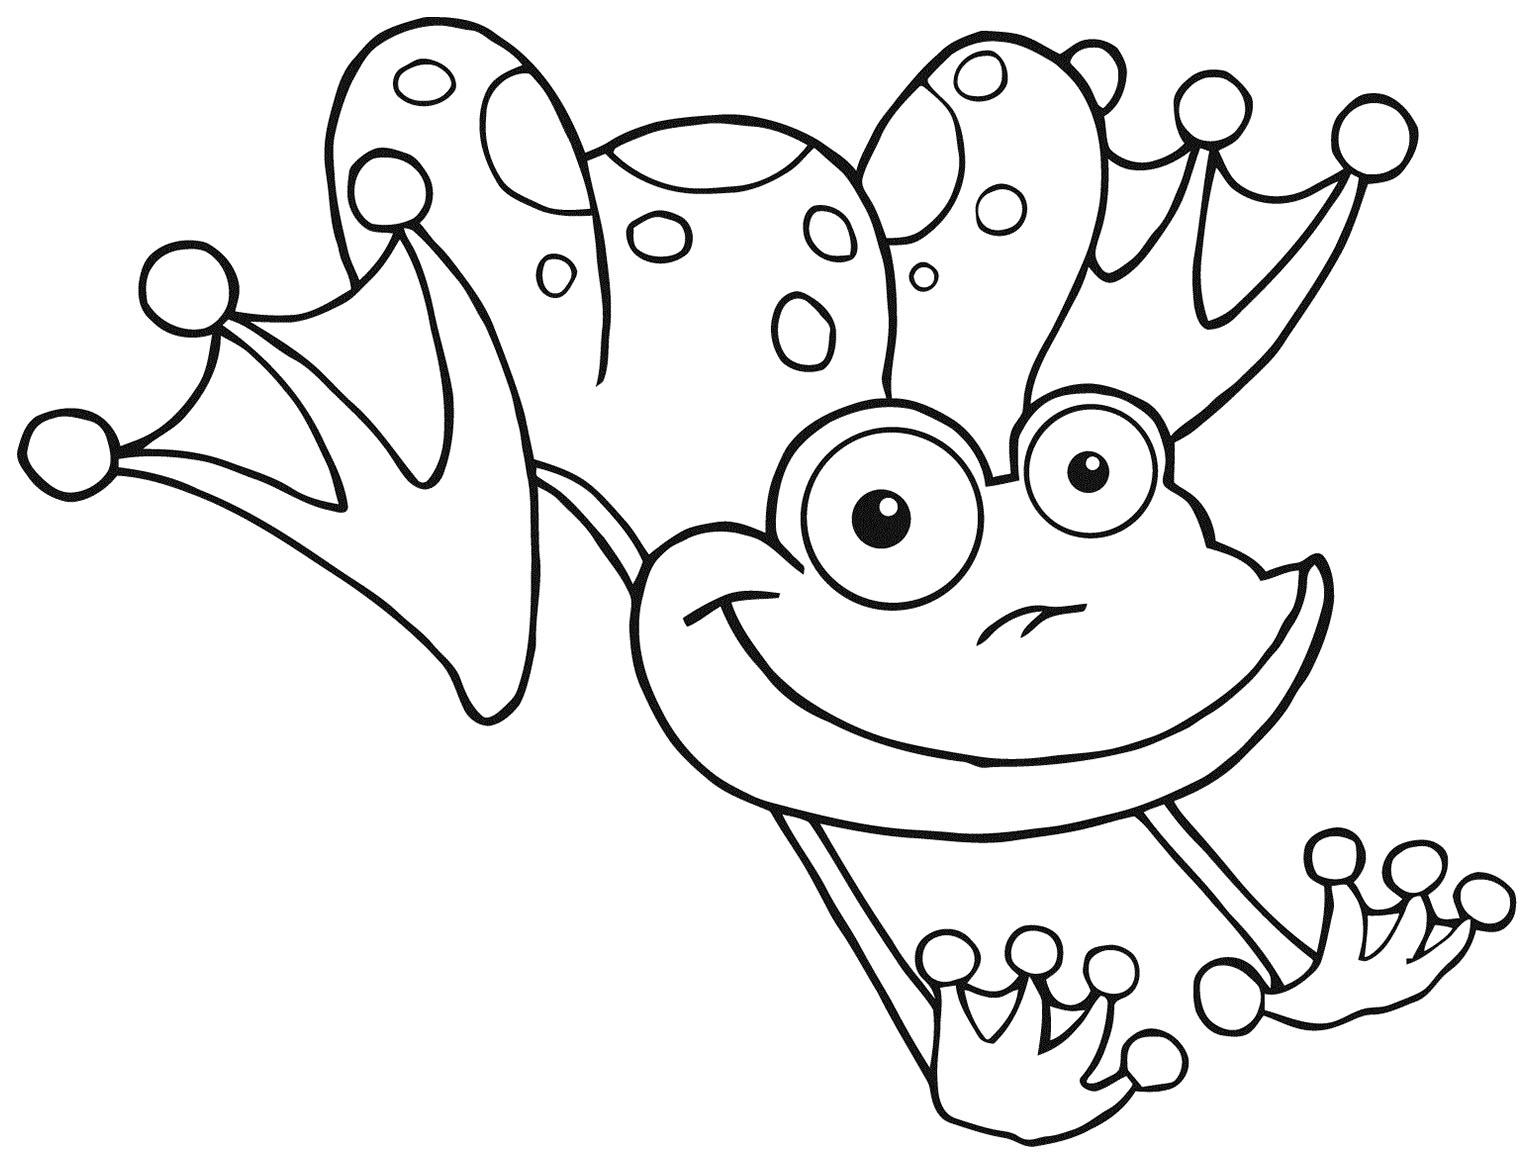 Beautiful Frogs coloring page to print and color